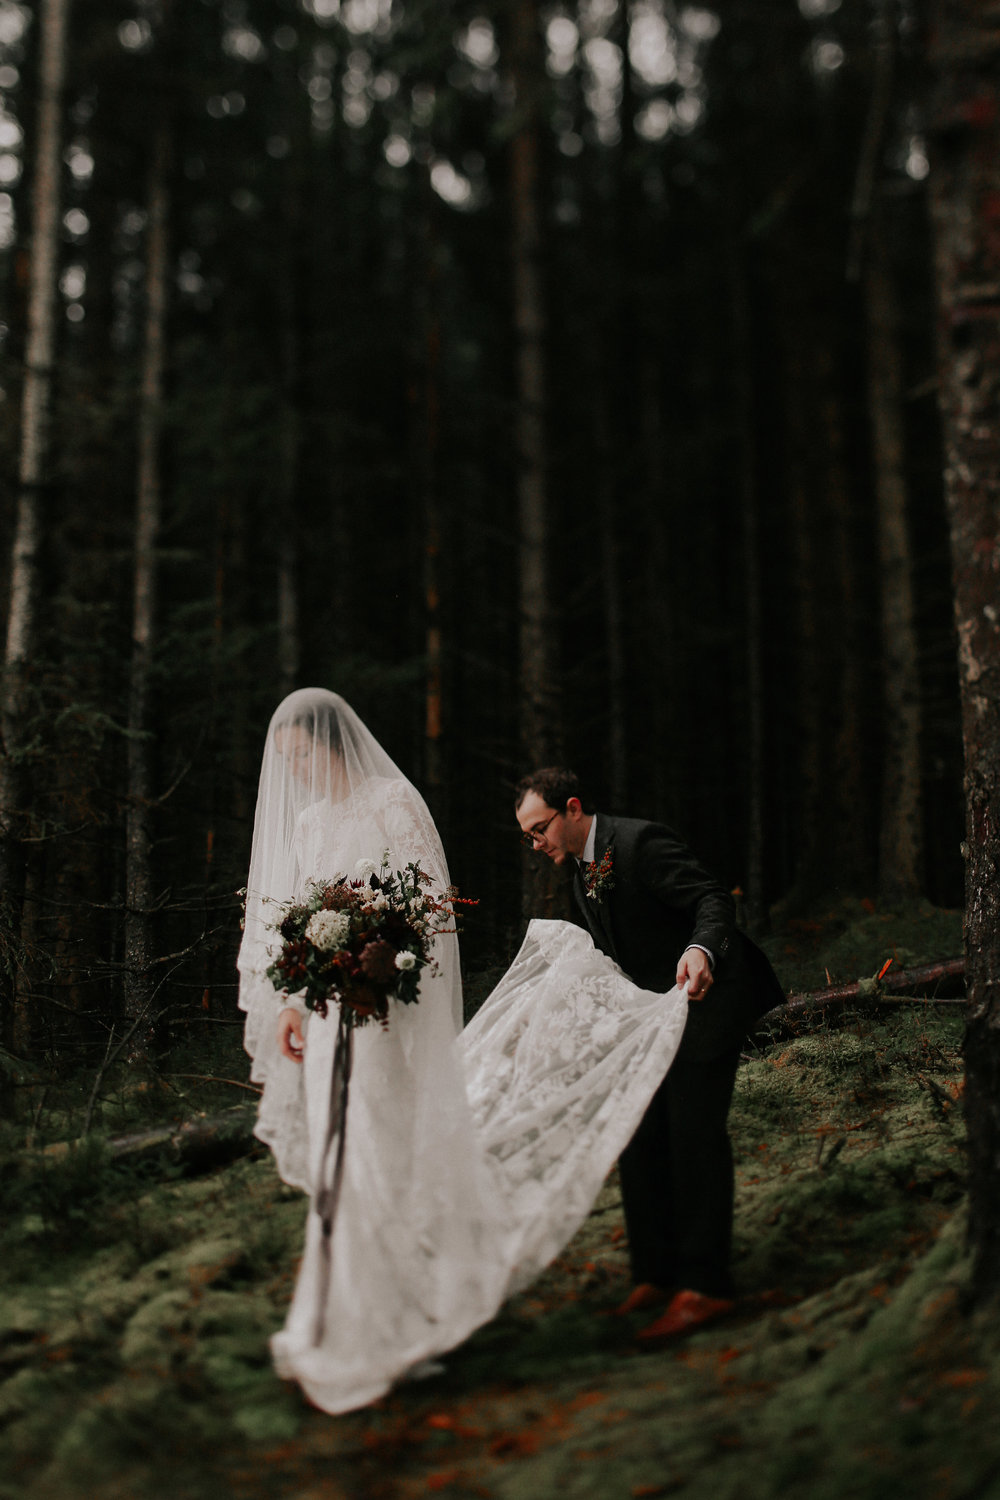 Scotland_Elopement_Melissa_Marshall_Photography_33.jpg